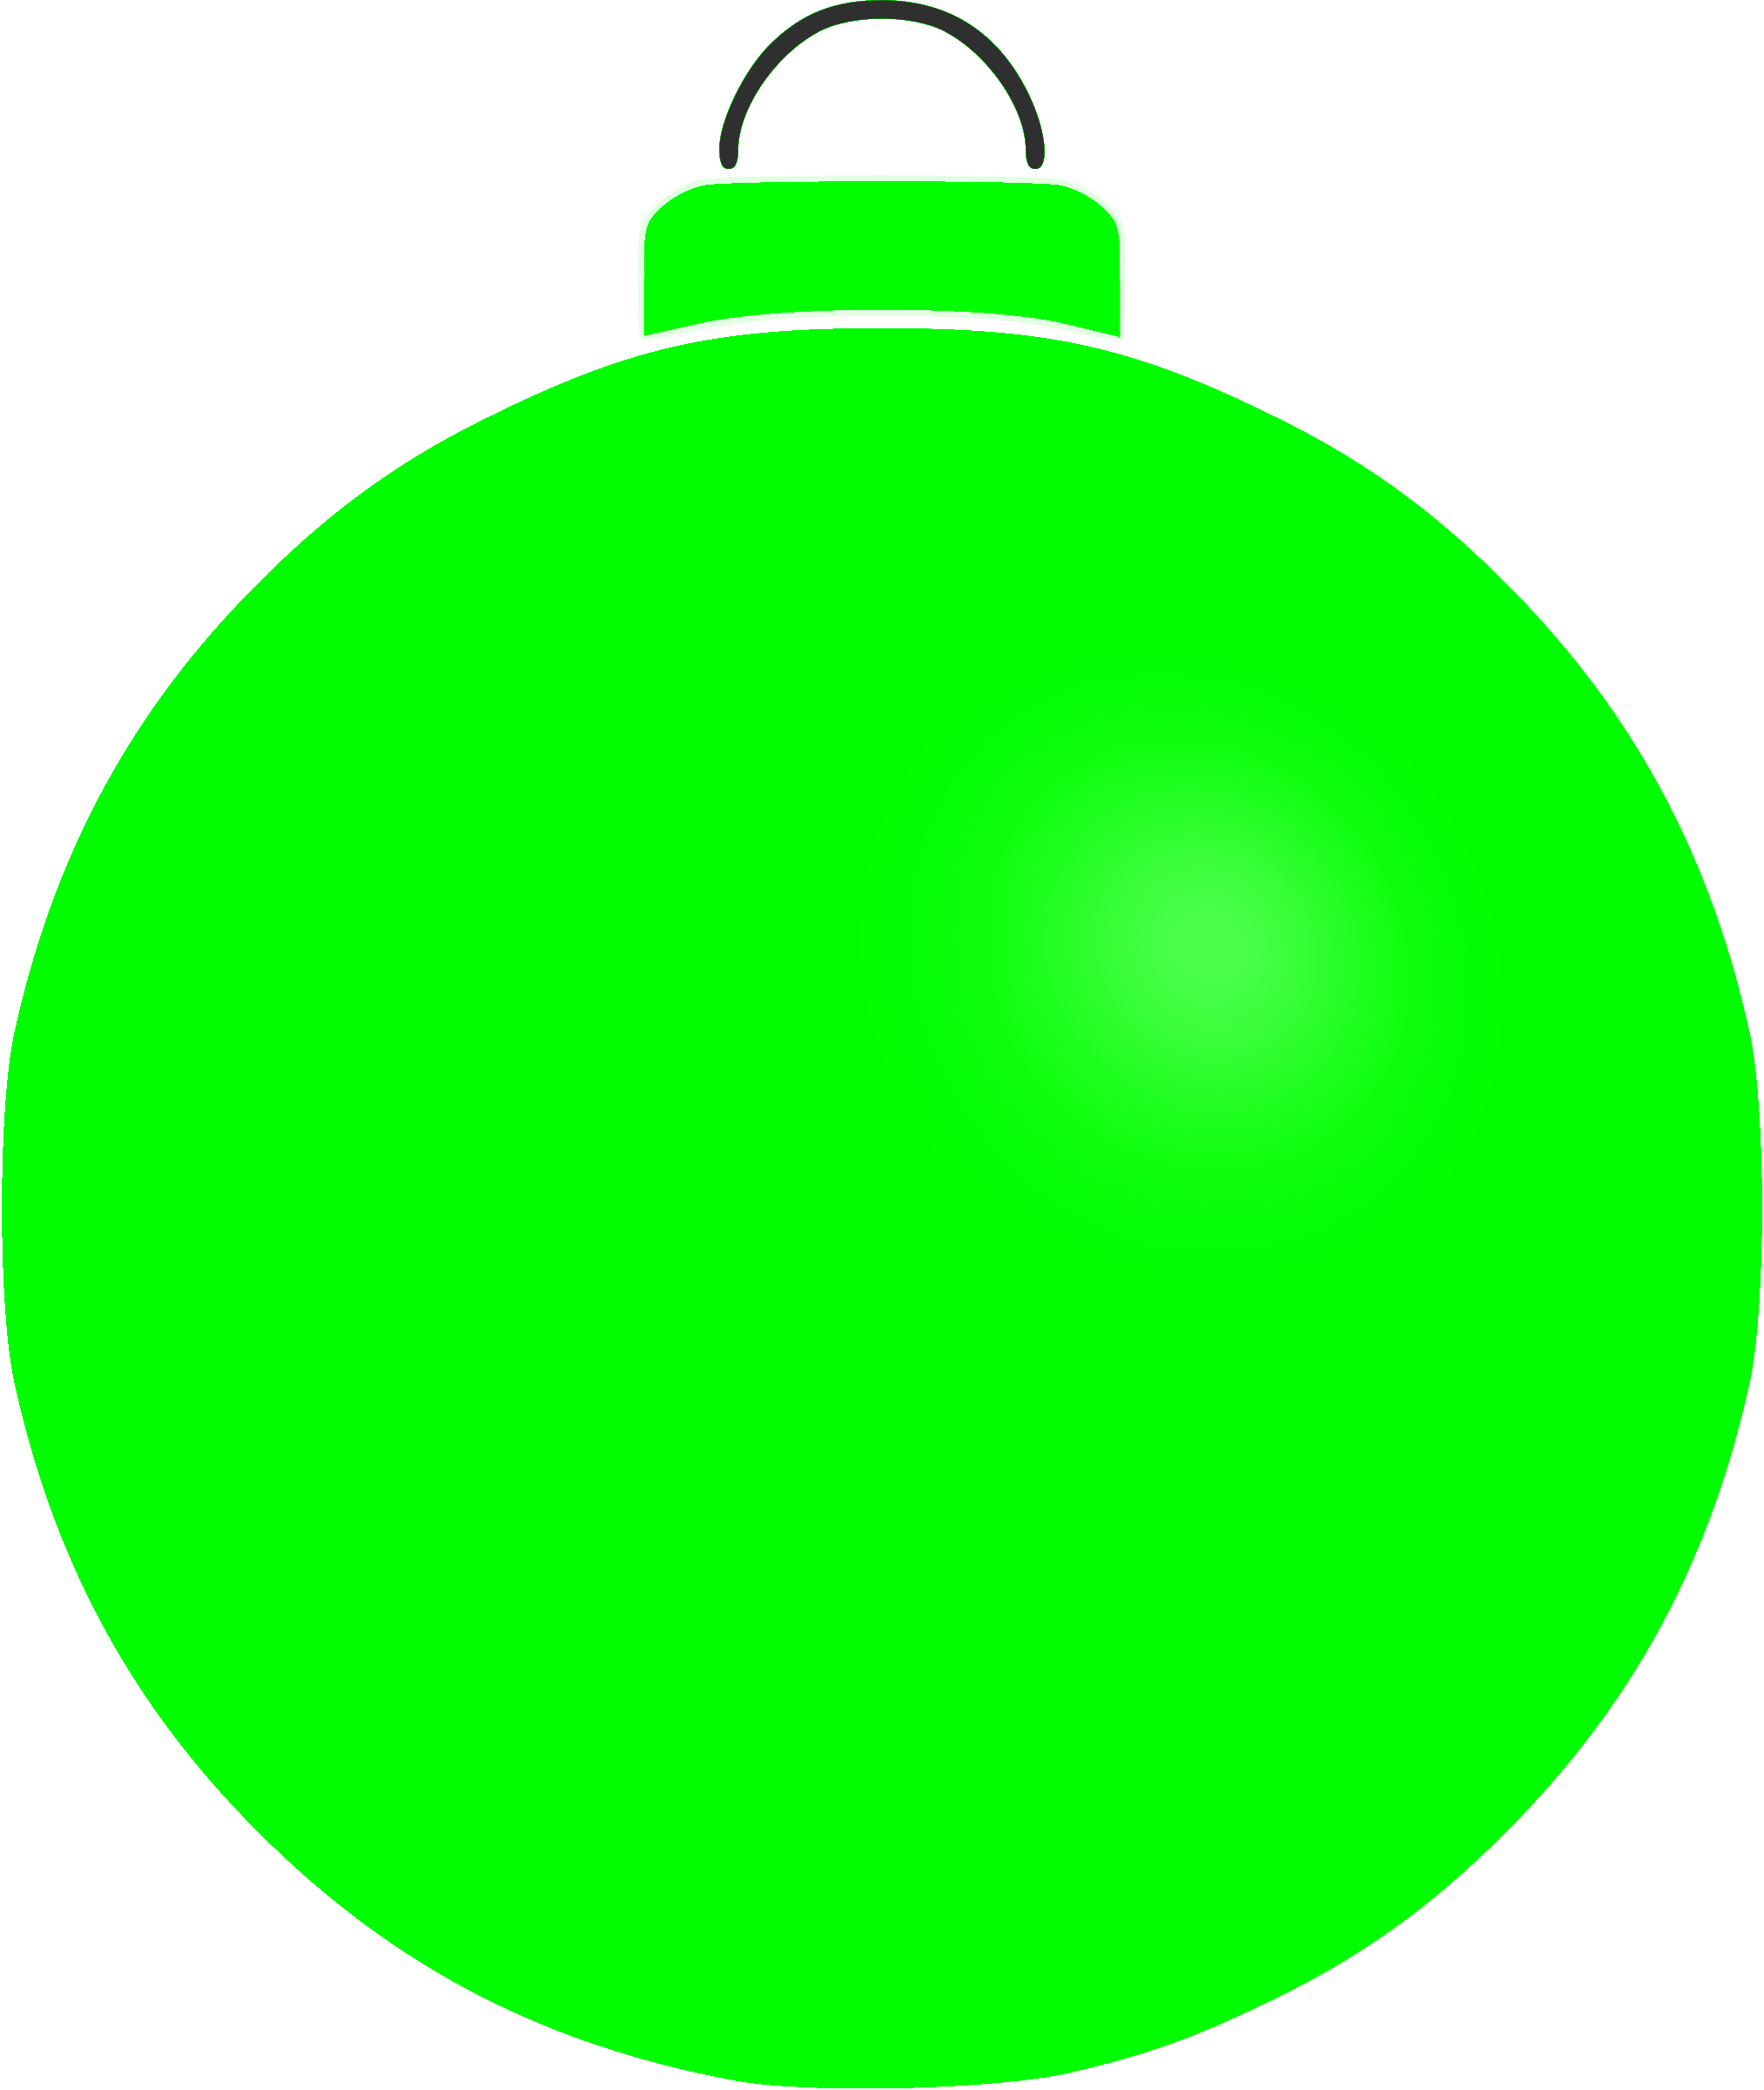 Christmas baubles clipart banner free stock Clipart - Plain bauble 3 banner free stock